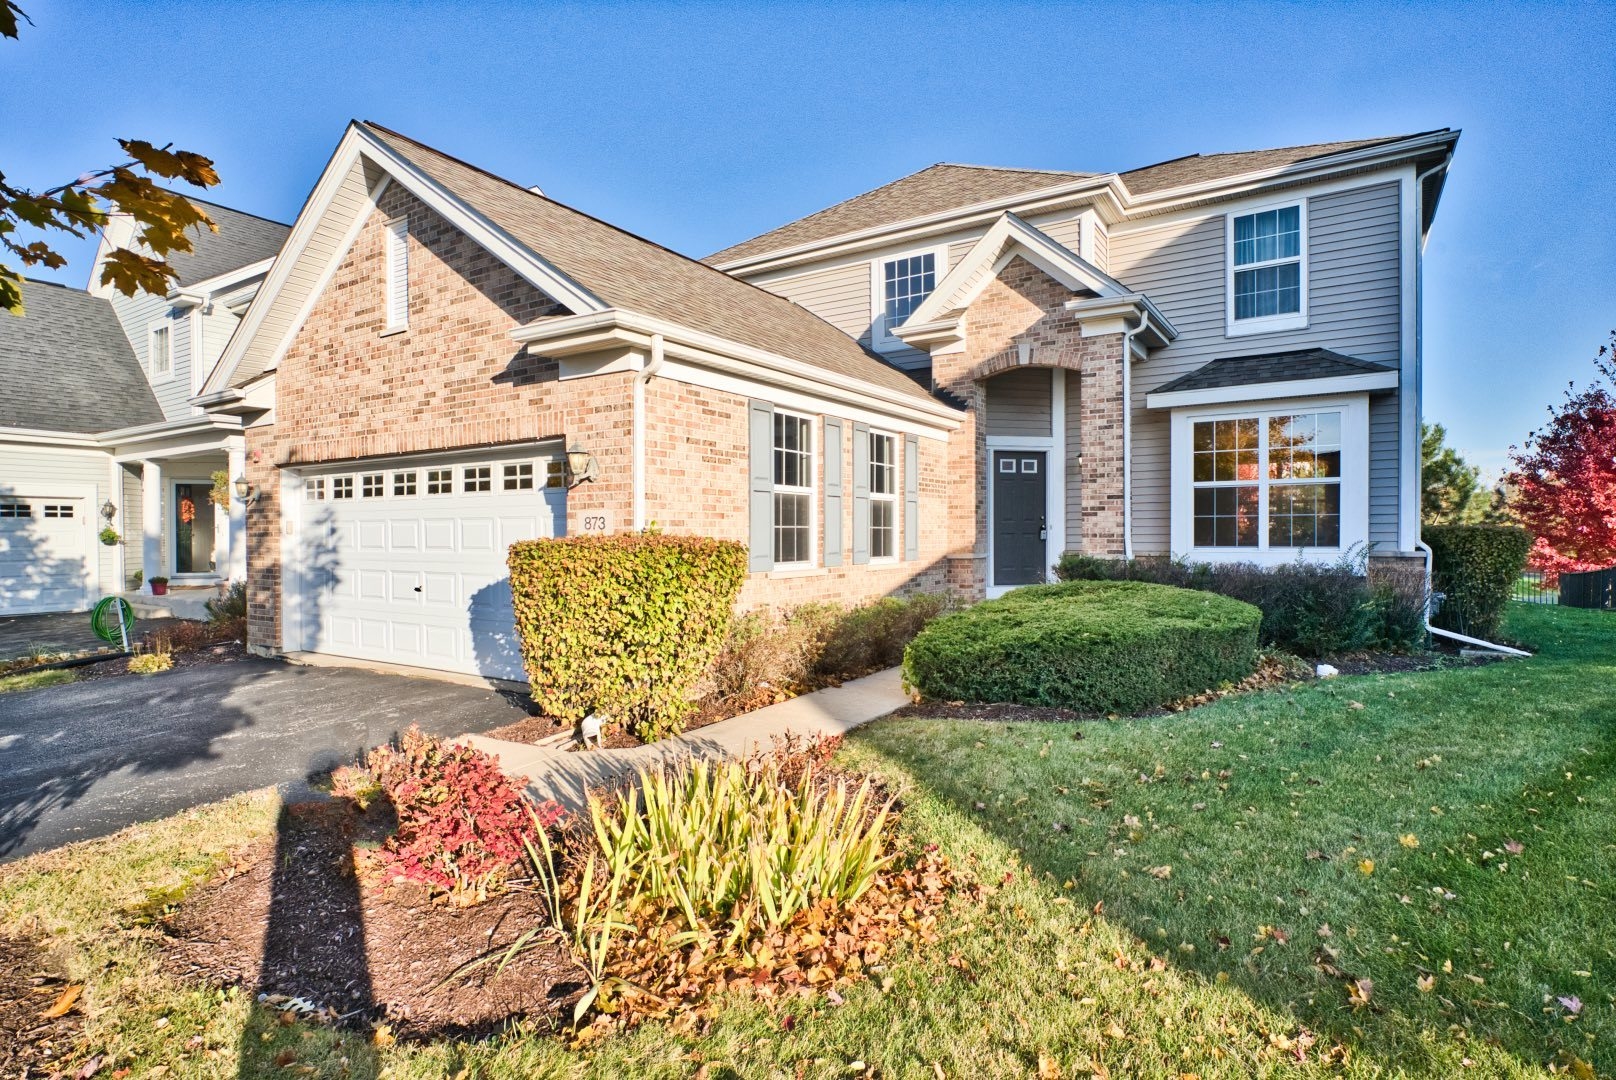 873 Savoy Court, Lake Zurich in Lake County, IL 60047 Home for Sale